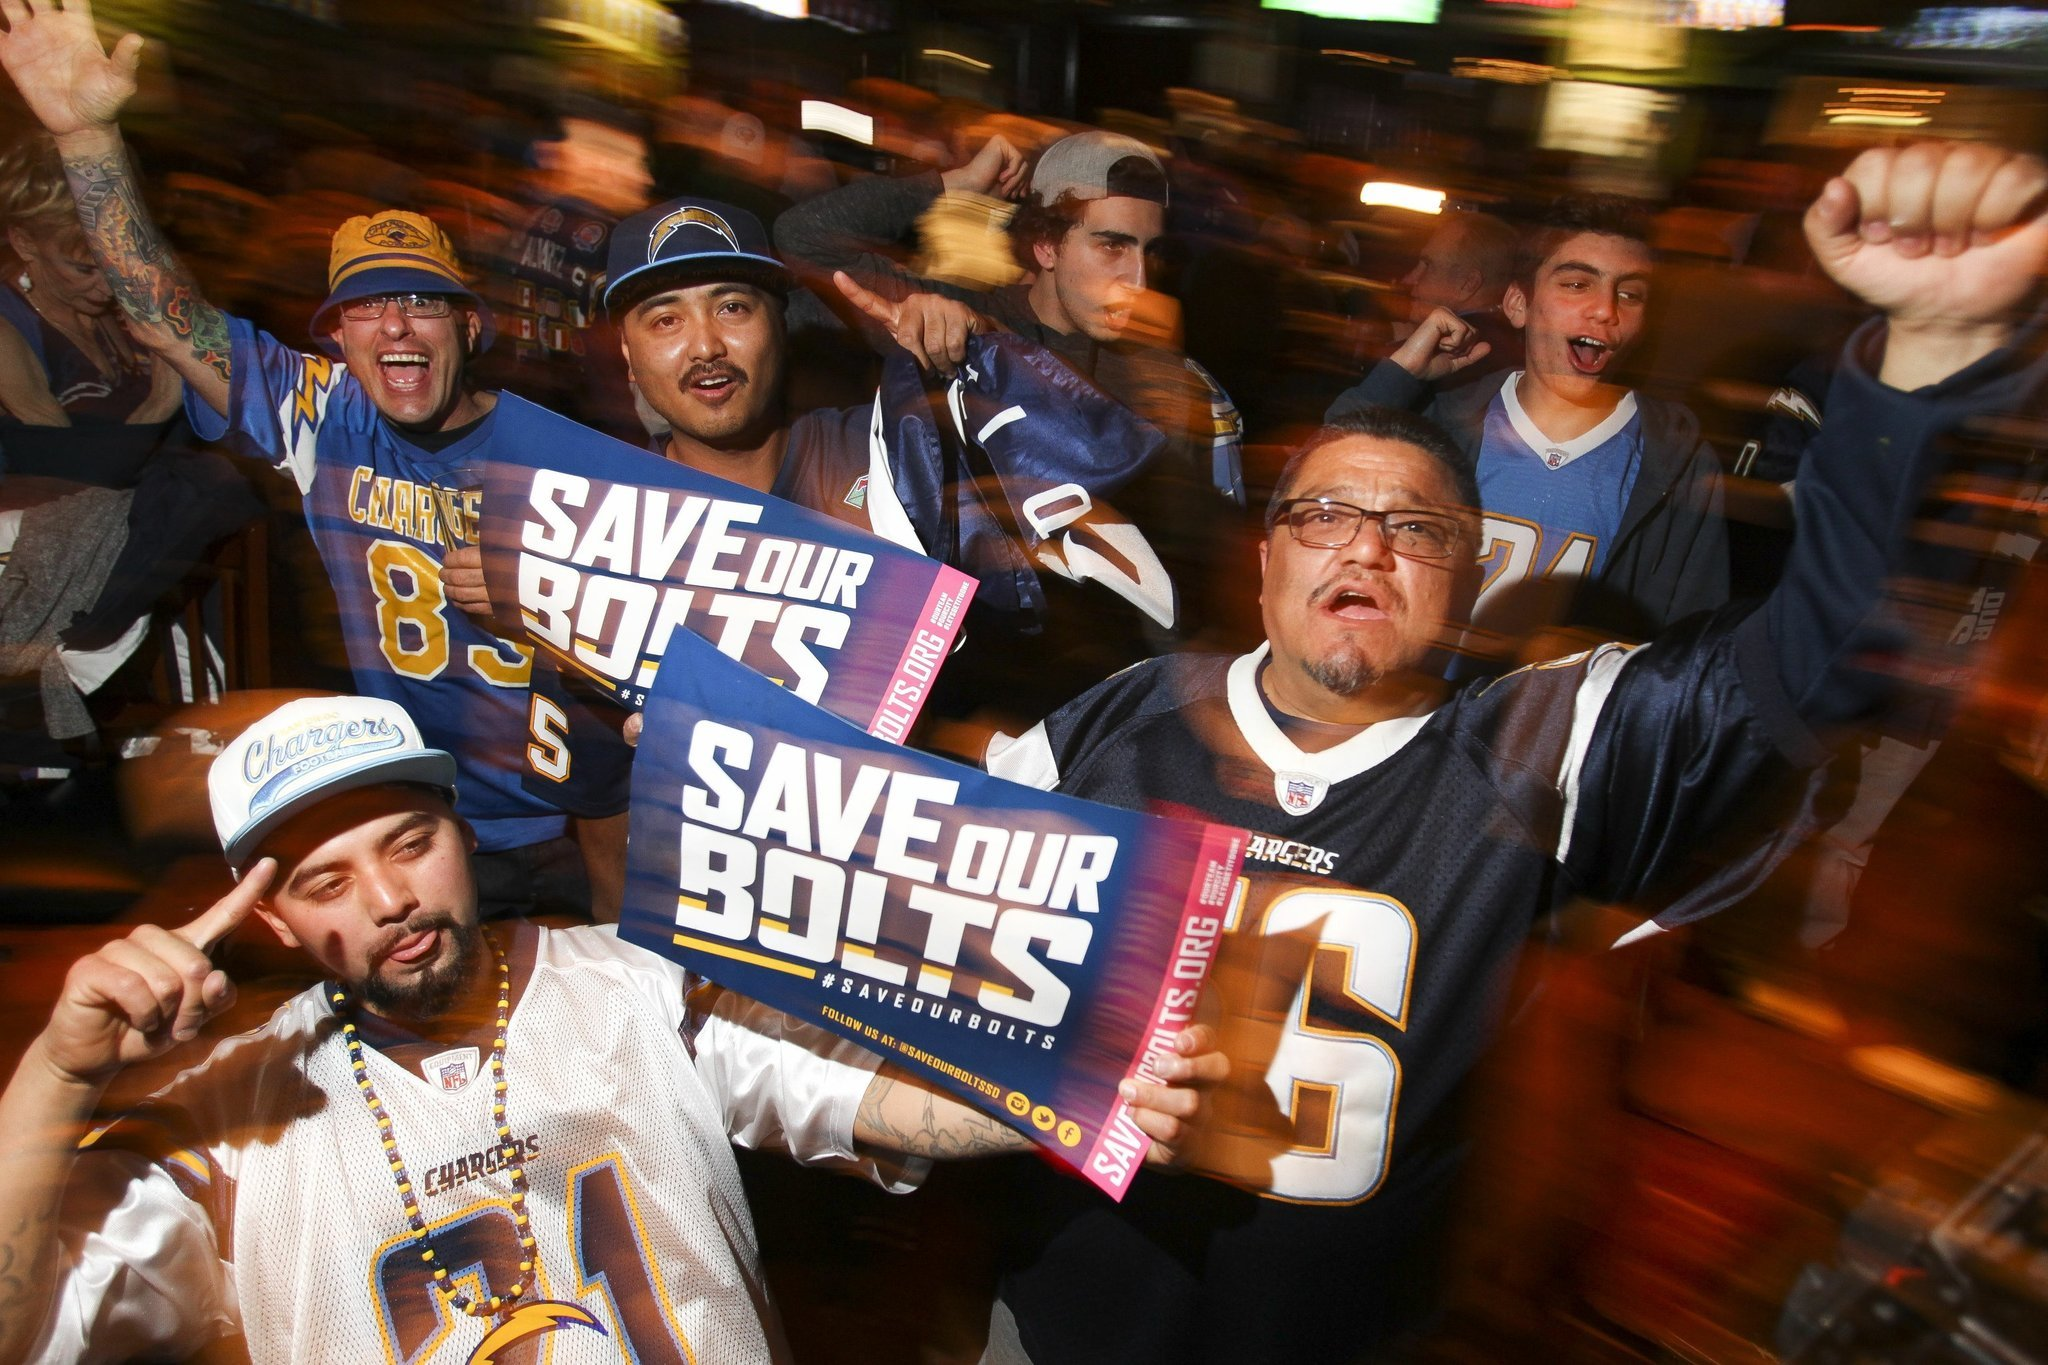 Chargers Fans Rally At Tilted Kilt The San Diego Union